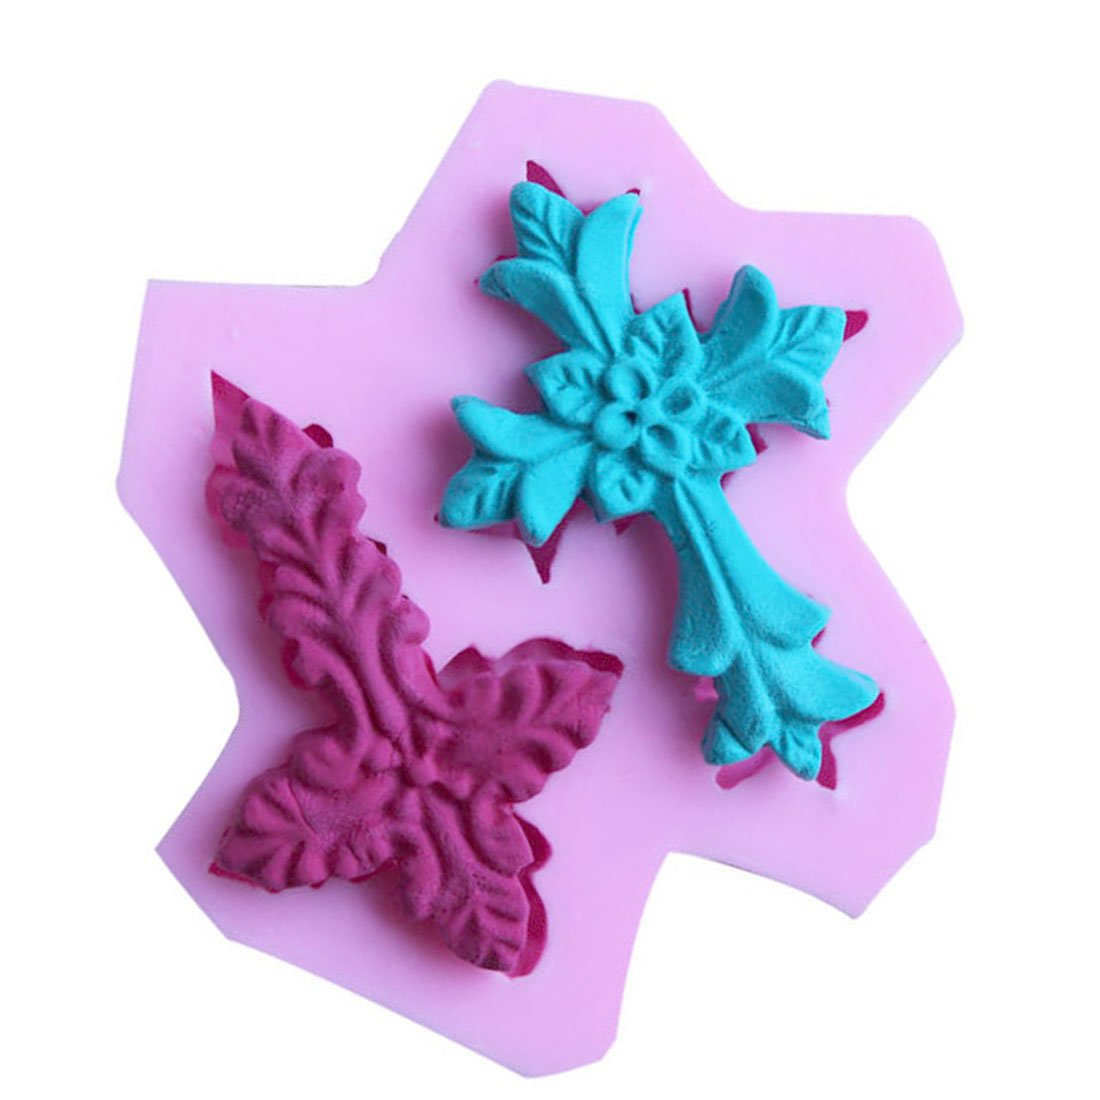 WJSYSHOP Cross Shape Silicone Fondant Mold Cake Decorating Chocolate Baking Mould – Cross